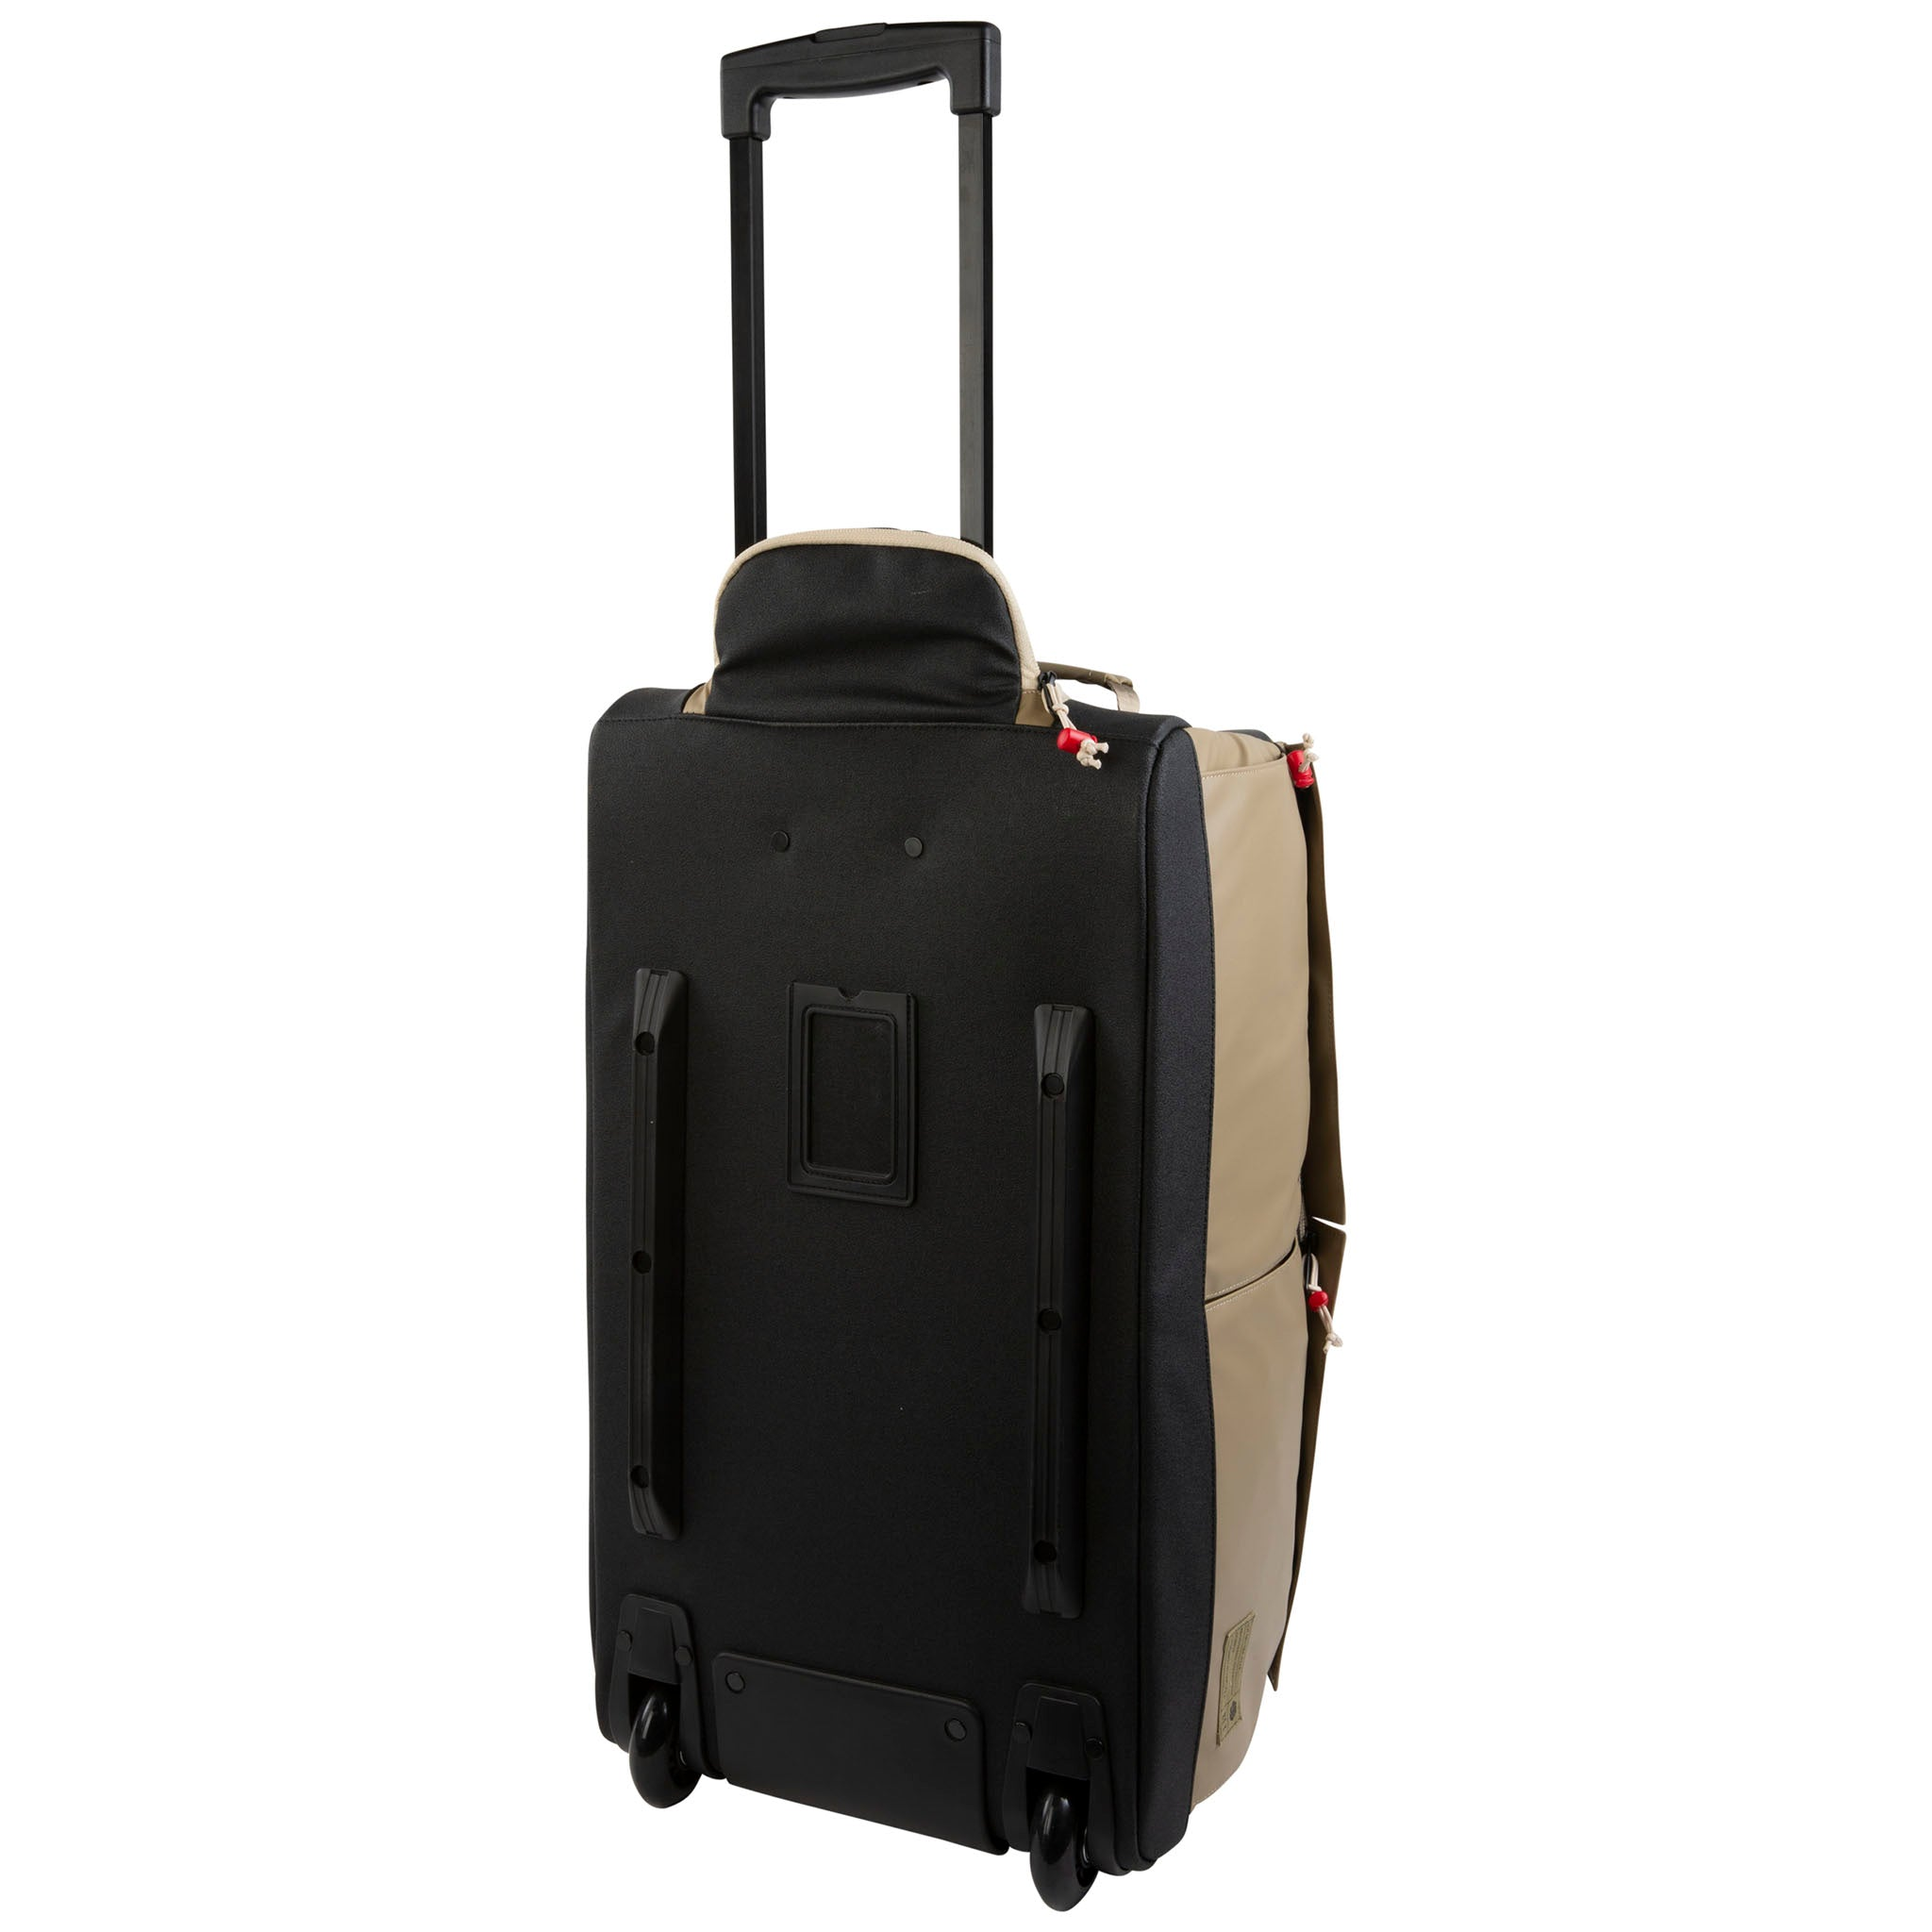 1025a1fea21d Travel Roller Bags, Duffel Bags, Carry On Bag, Gym Duffels - HEX